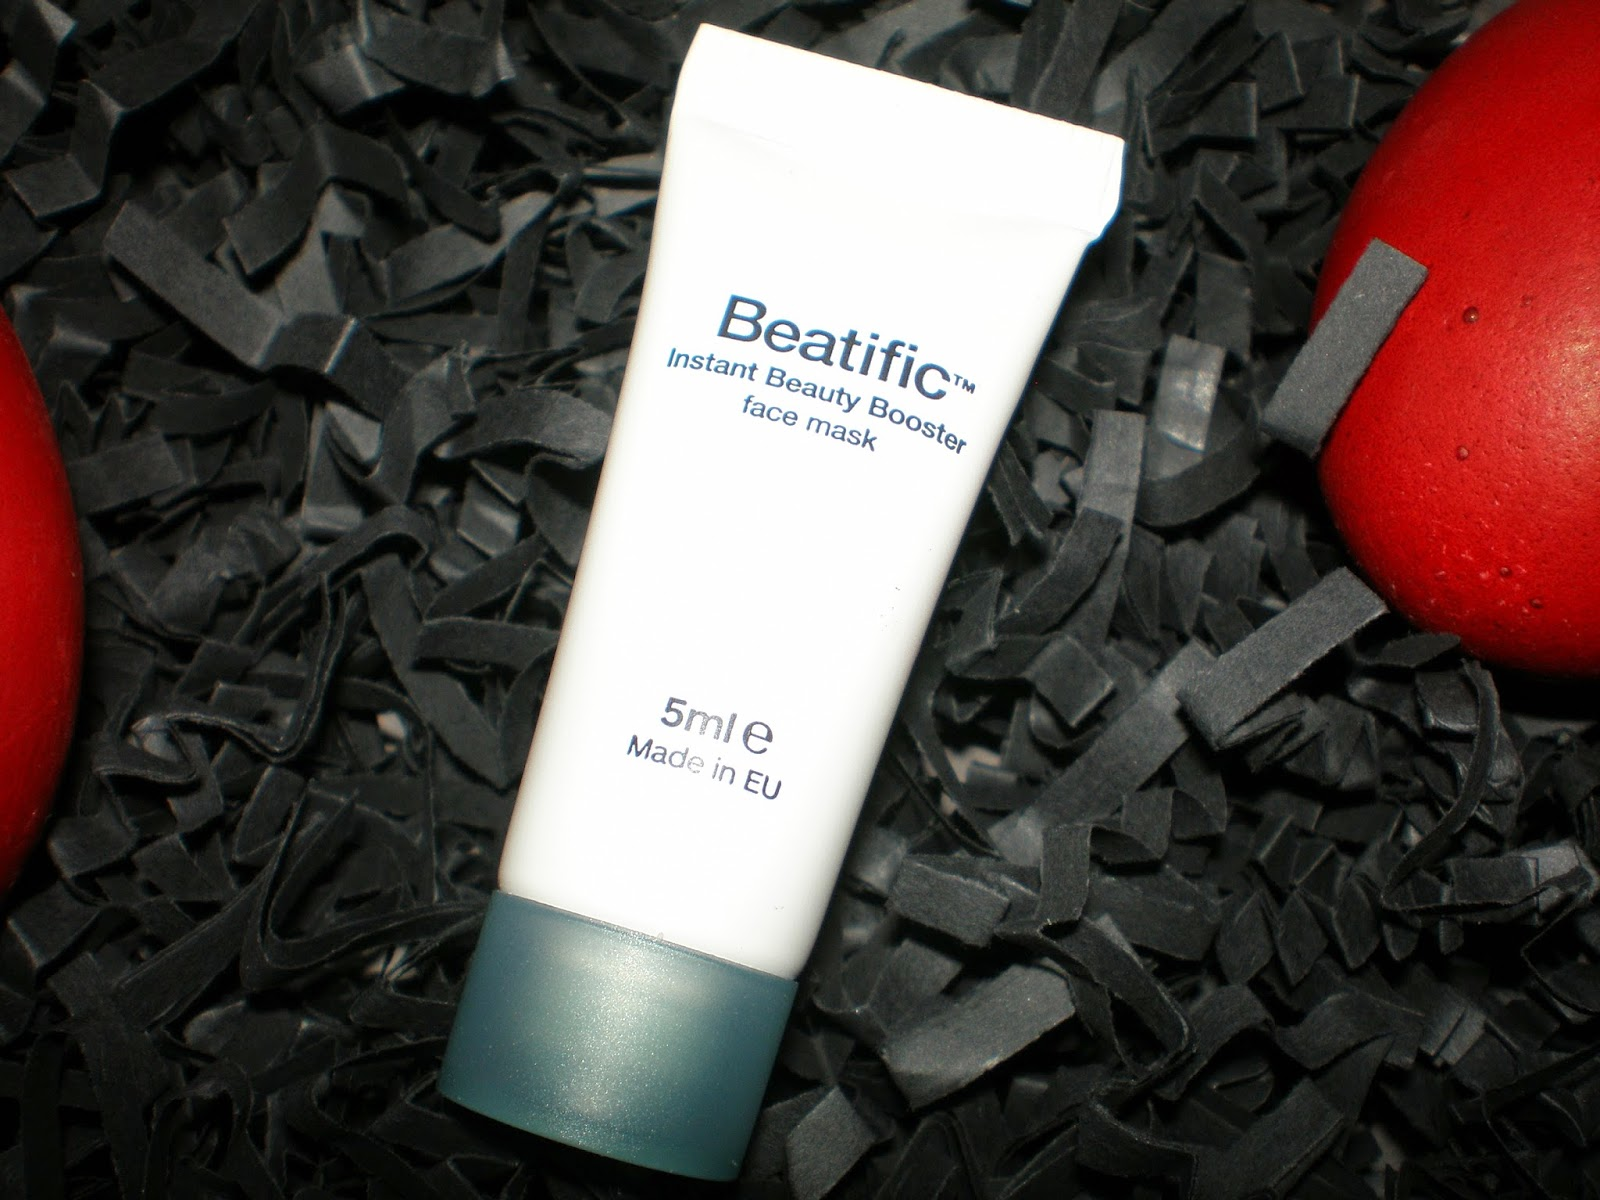 Beatific Instant Beauty Booster face mask